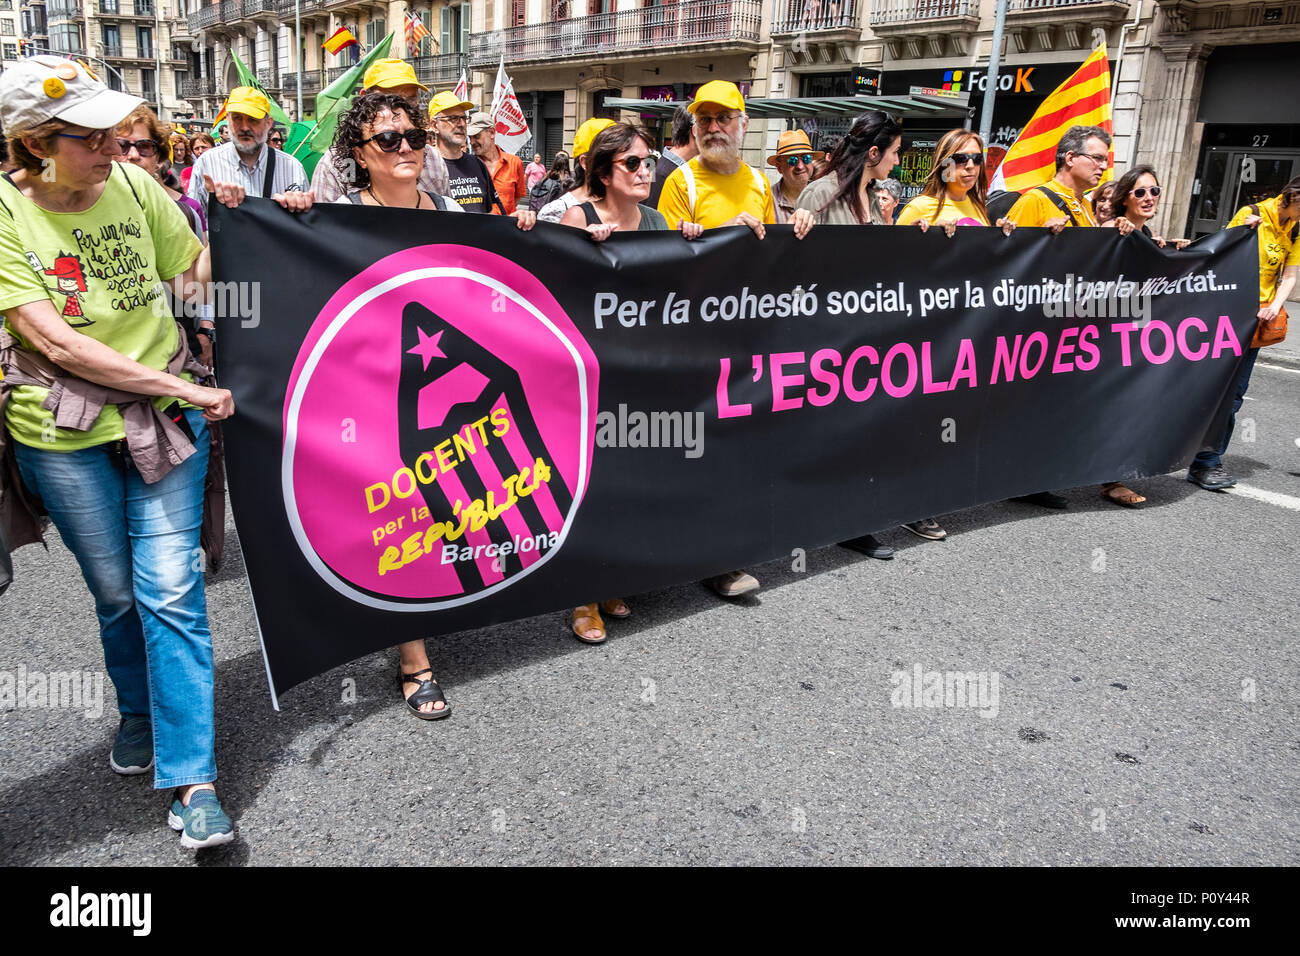 Barcelona, Spain. 10th June 2018. Several demonstrators are seen with a banner with the text 'School should not be touched'.. Hundreds of people called by the major unions of education have attended the demonstration to defend education and in support of one of the secondary schools that has suffered most from the repression of the Spanish state.Professors of the Palau Institute have been accused and prosecuted for 'indoctrination' for defending the right to vote on October 1. Credit: SOPA Images Limited/Alamy Live News - Stock Image